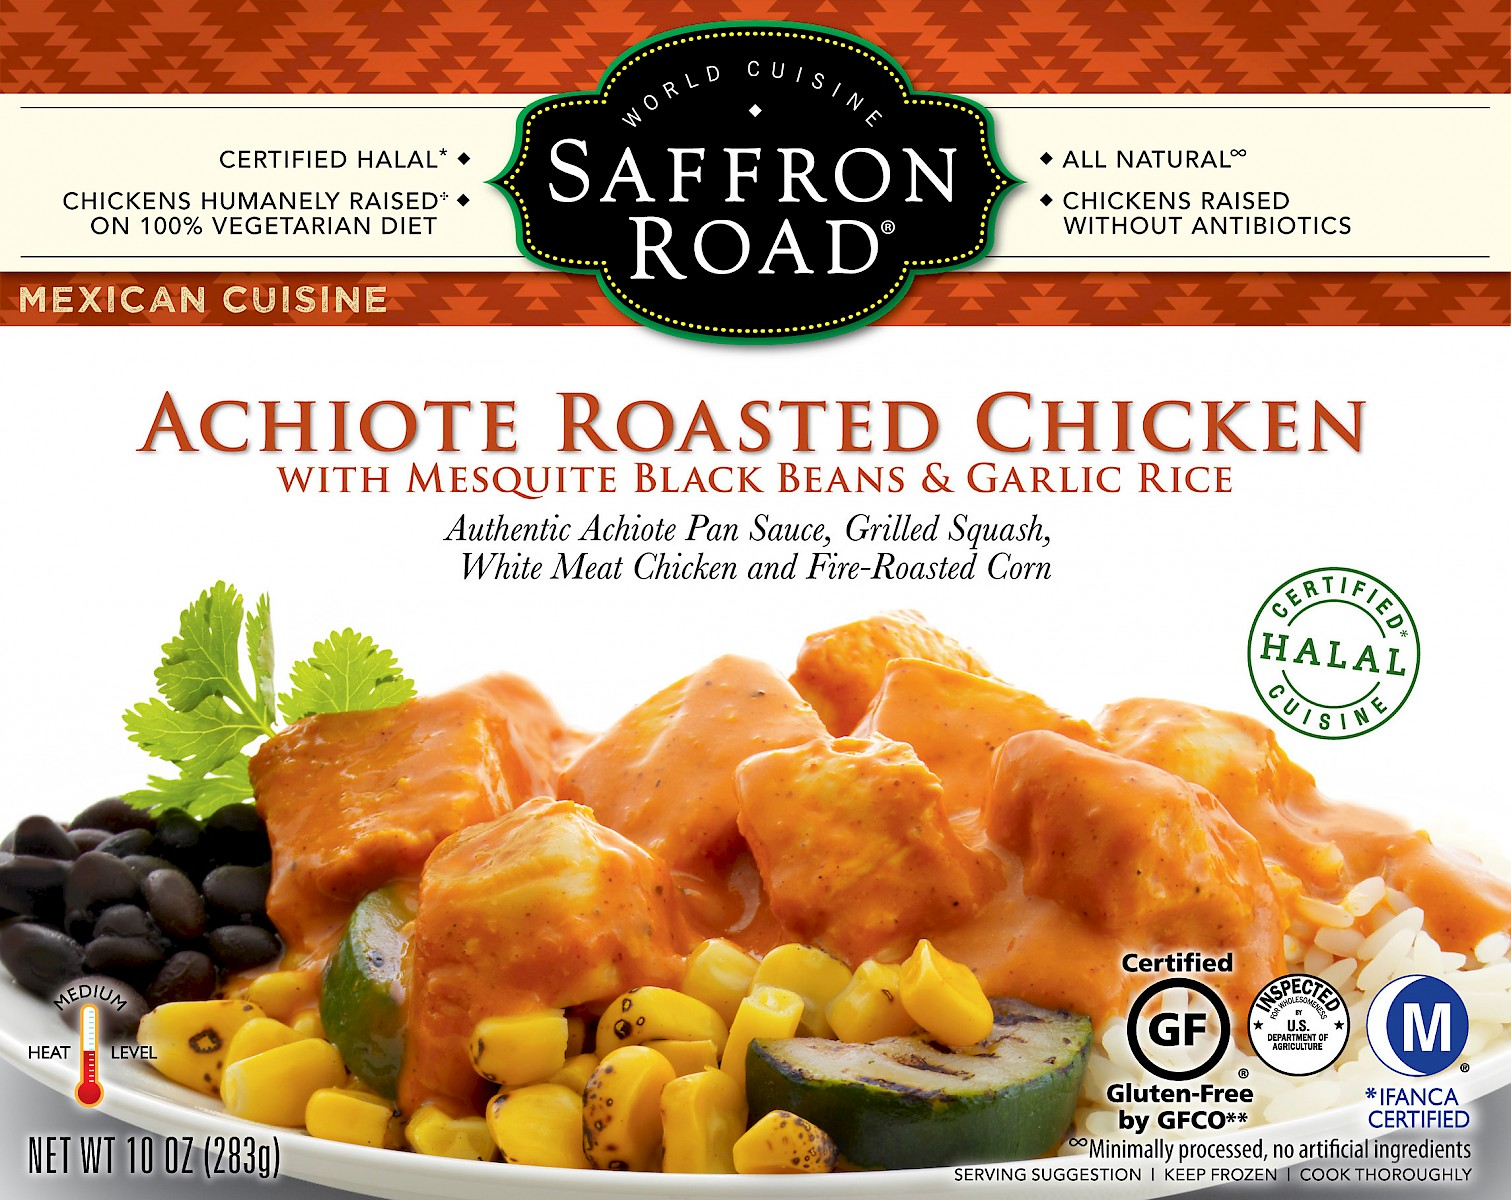 Saffron Road Mexican Cuisine Achiote Roasted Chicken is a Hit